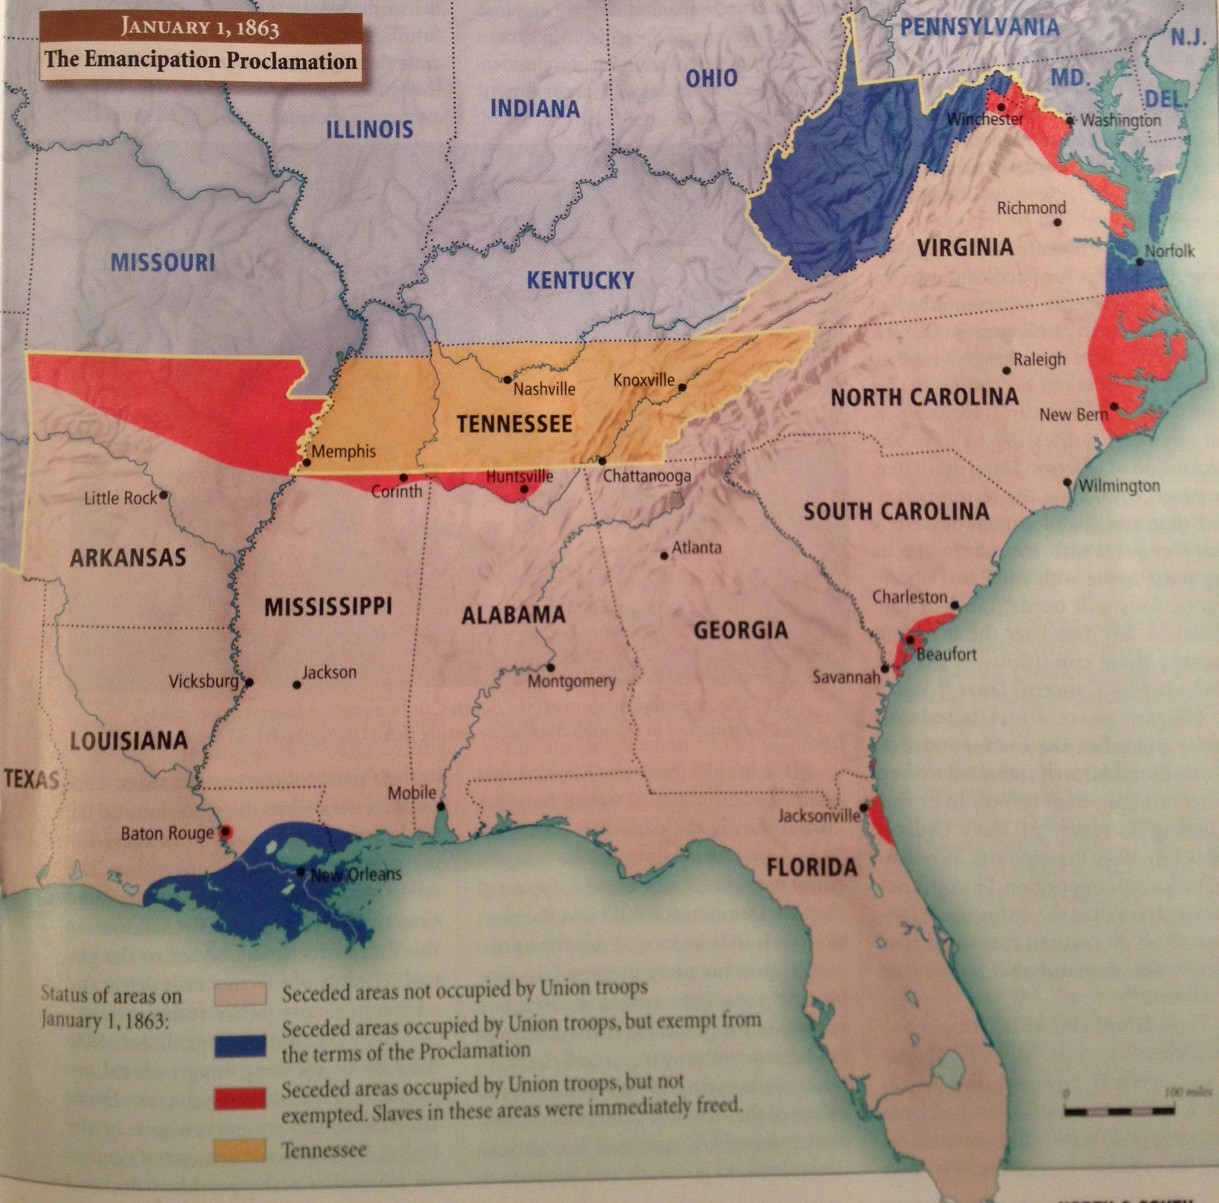 where slaves were immediately d by the emancipation in response to my last post al mackey referenced a north and south magazine article from back in 2001 by william harris on the emancipation proclamation